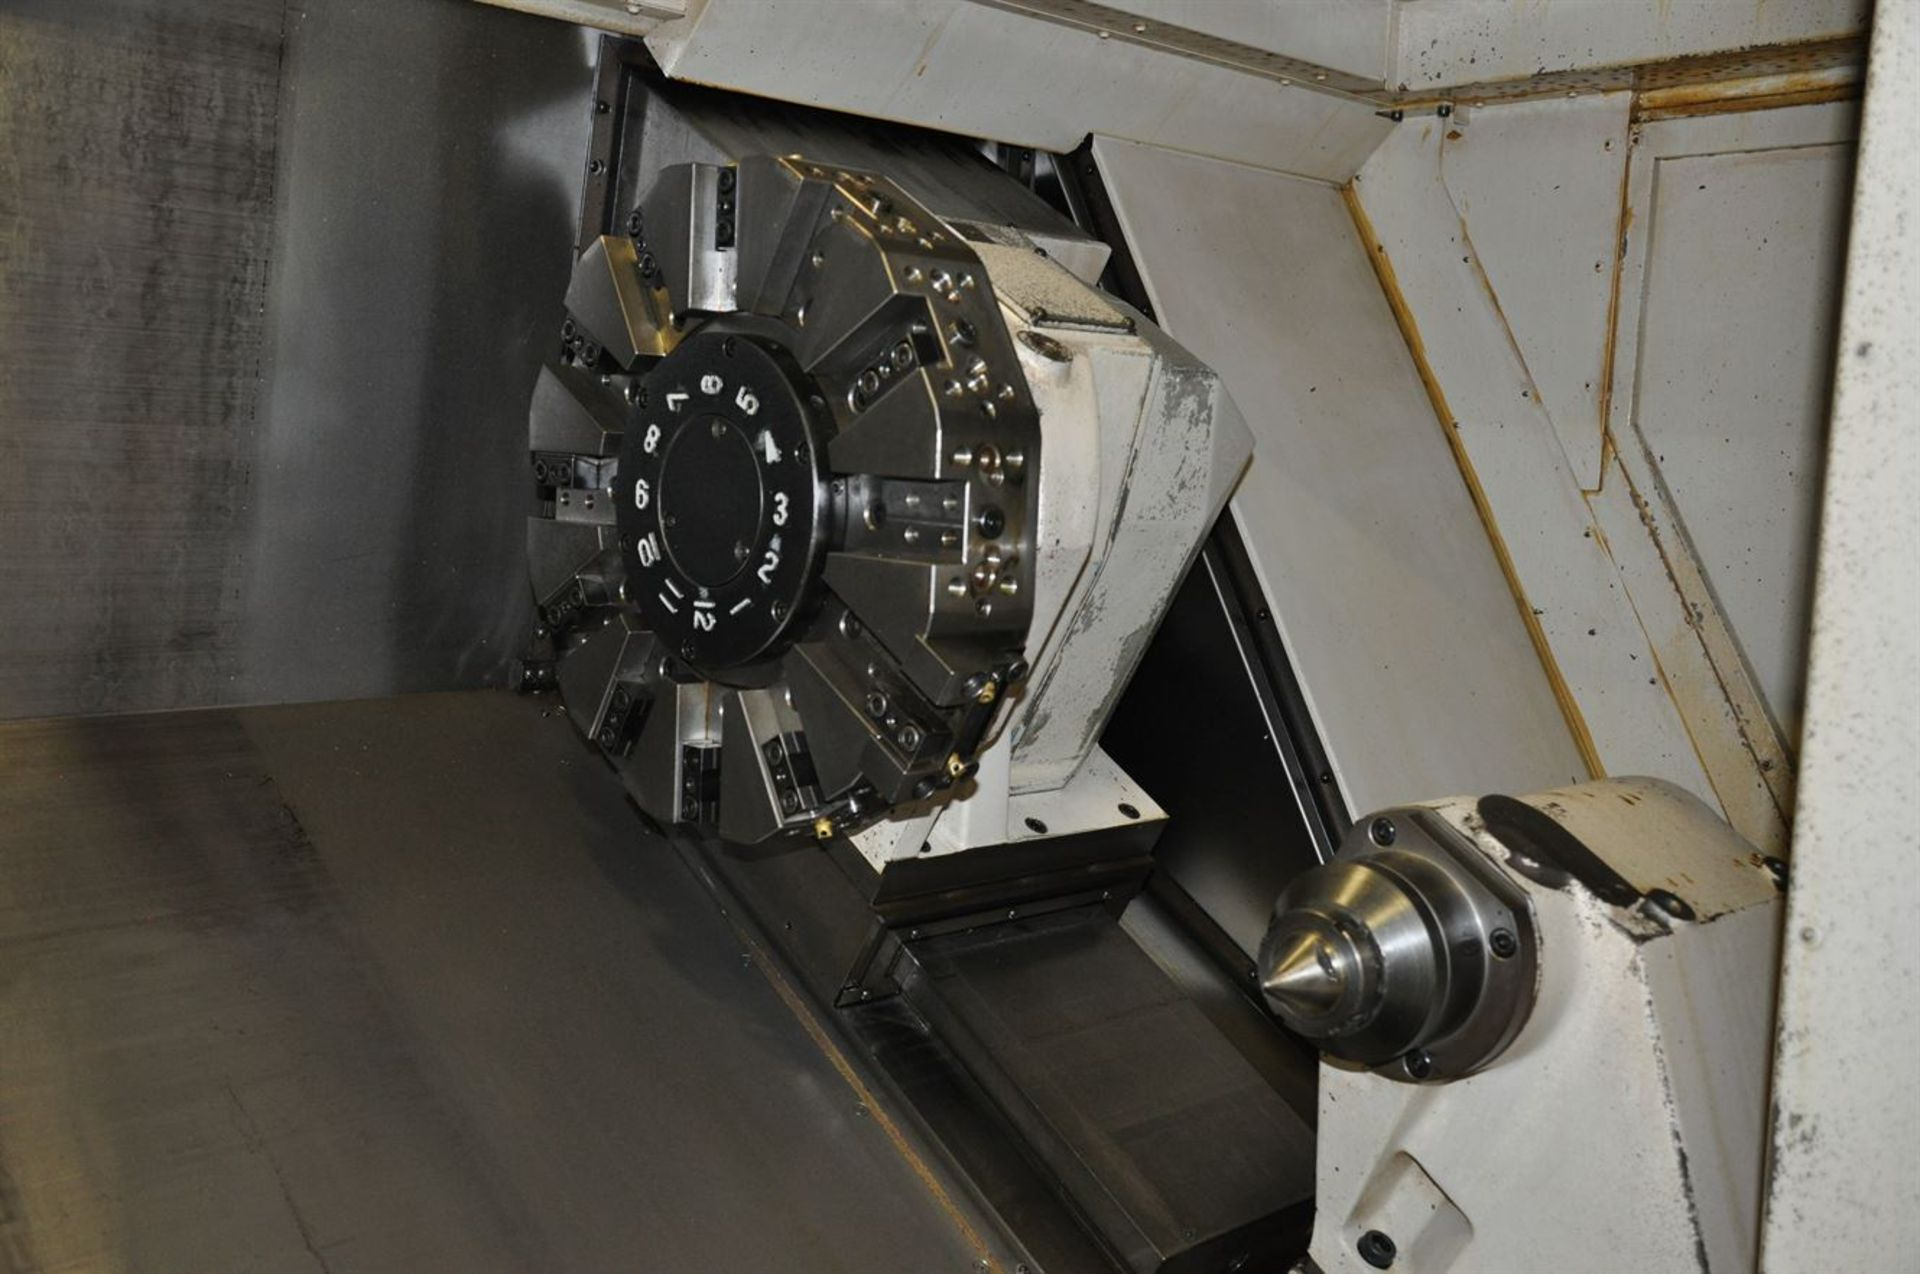 "2012 OKUMA SPACE TURN LB4000 EX Turning Center, s/n 163014, w/ OSP-P200LA Control, 3.5"" Bore, SCHUNK - Image 3 of 8"